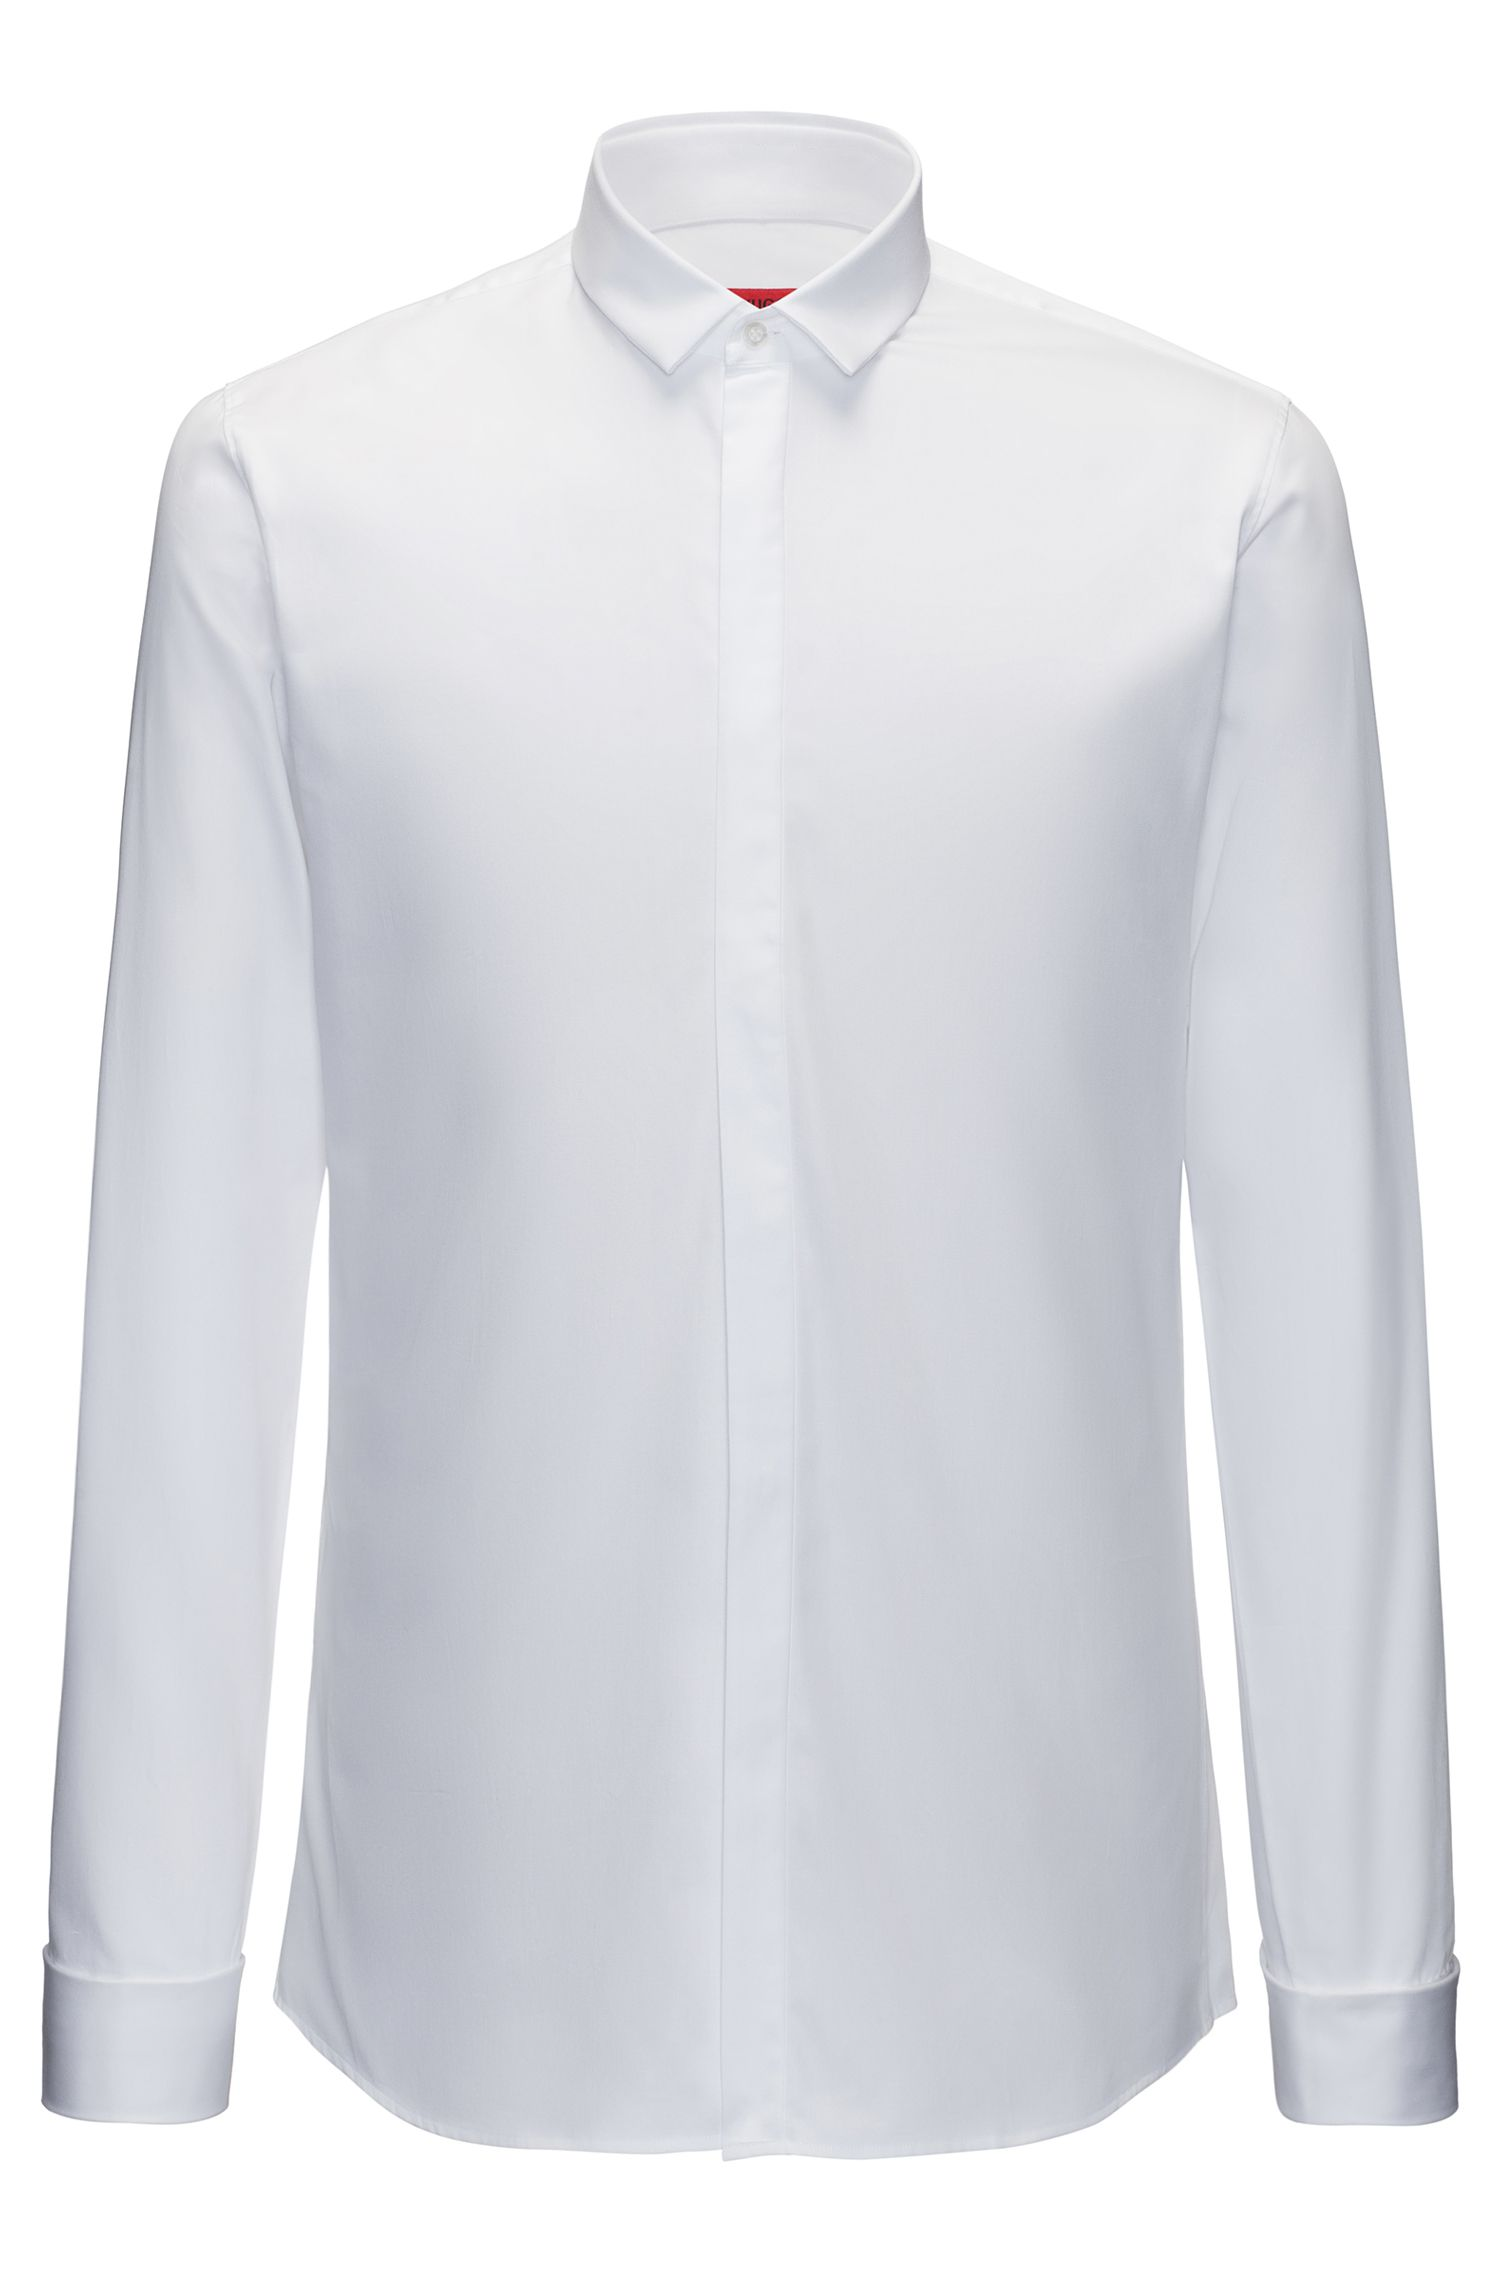 Easy-Iron Cotton Dress Shirt, Extra Slim Fit | Ejinar